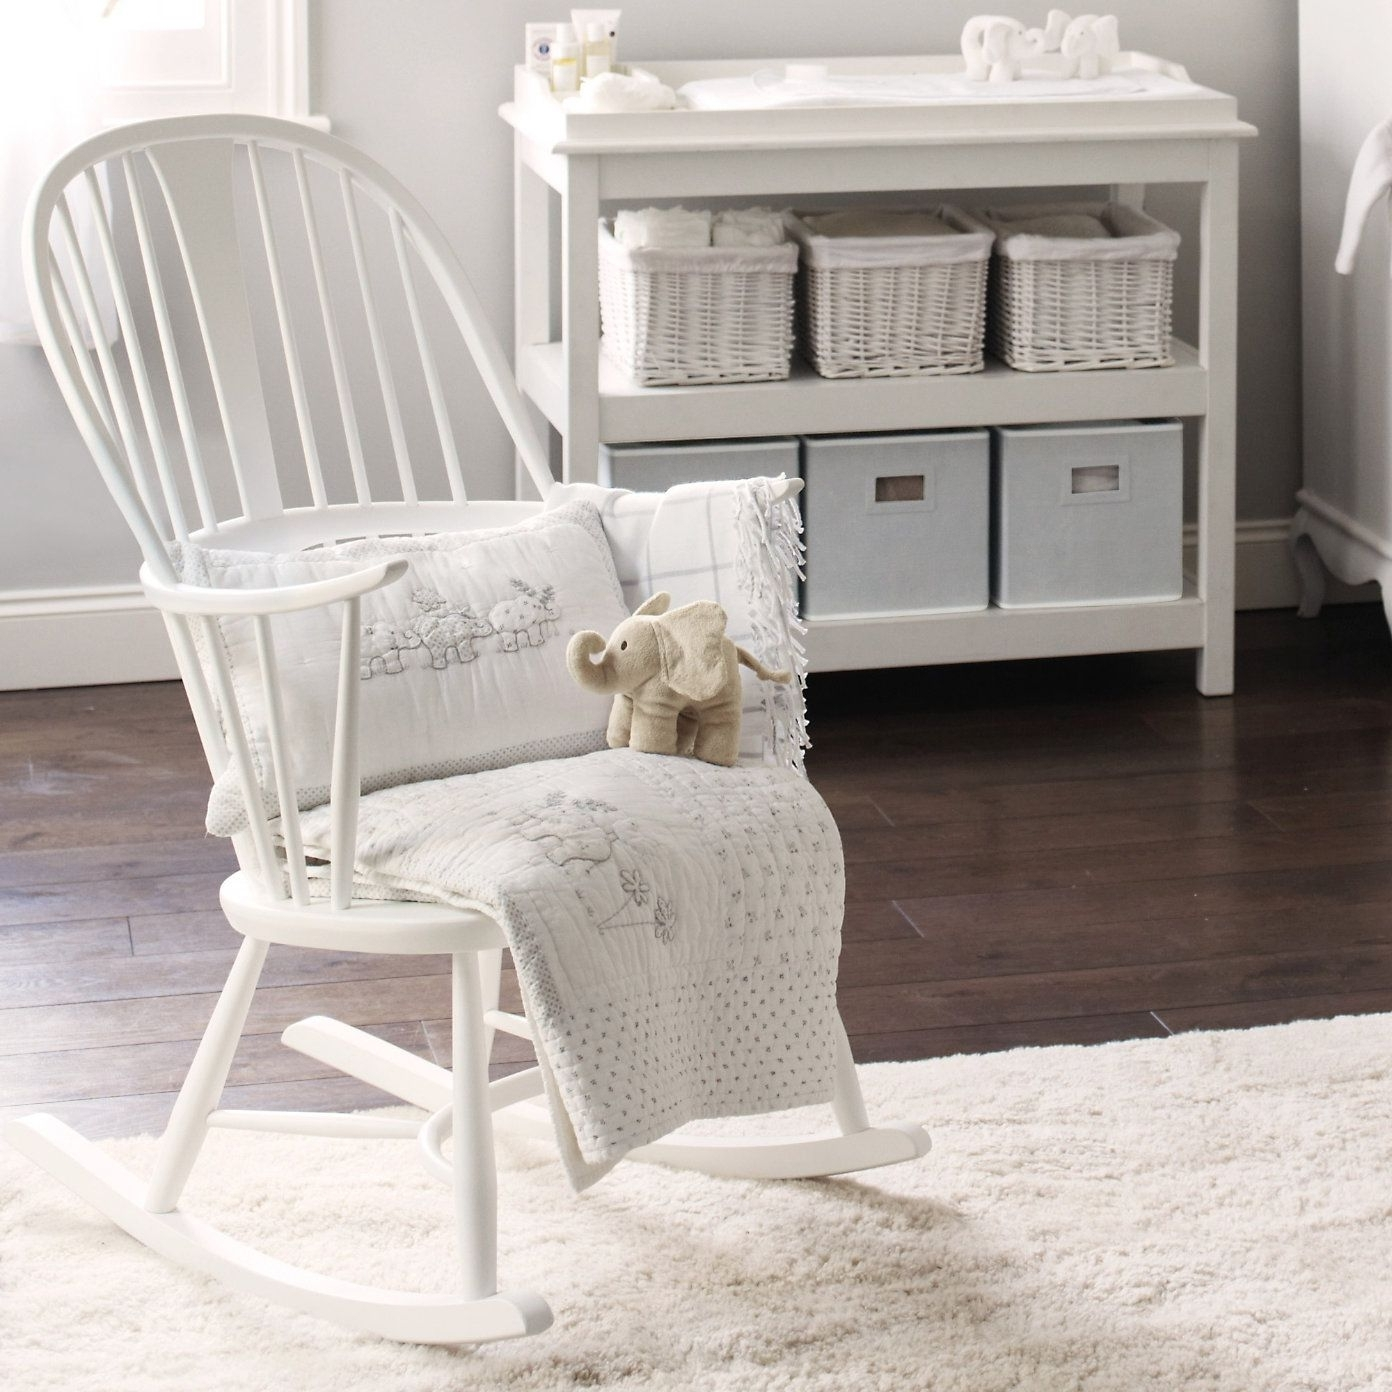 Fashionable Rocking Chairs For Baby Room For Buy Lookbooks > Home > Ercol Rocking Chair – White From The White (View 13 of 20)